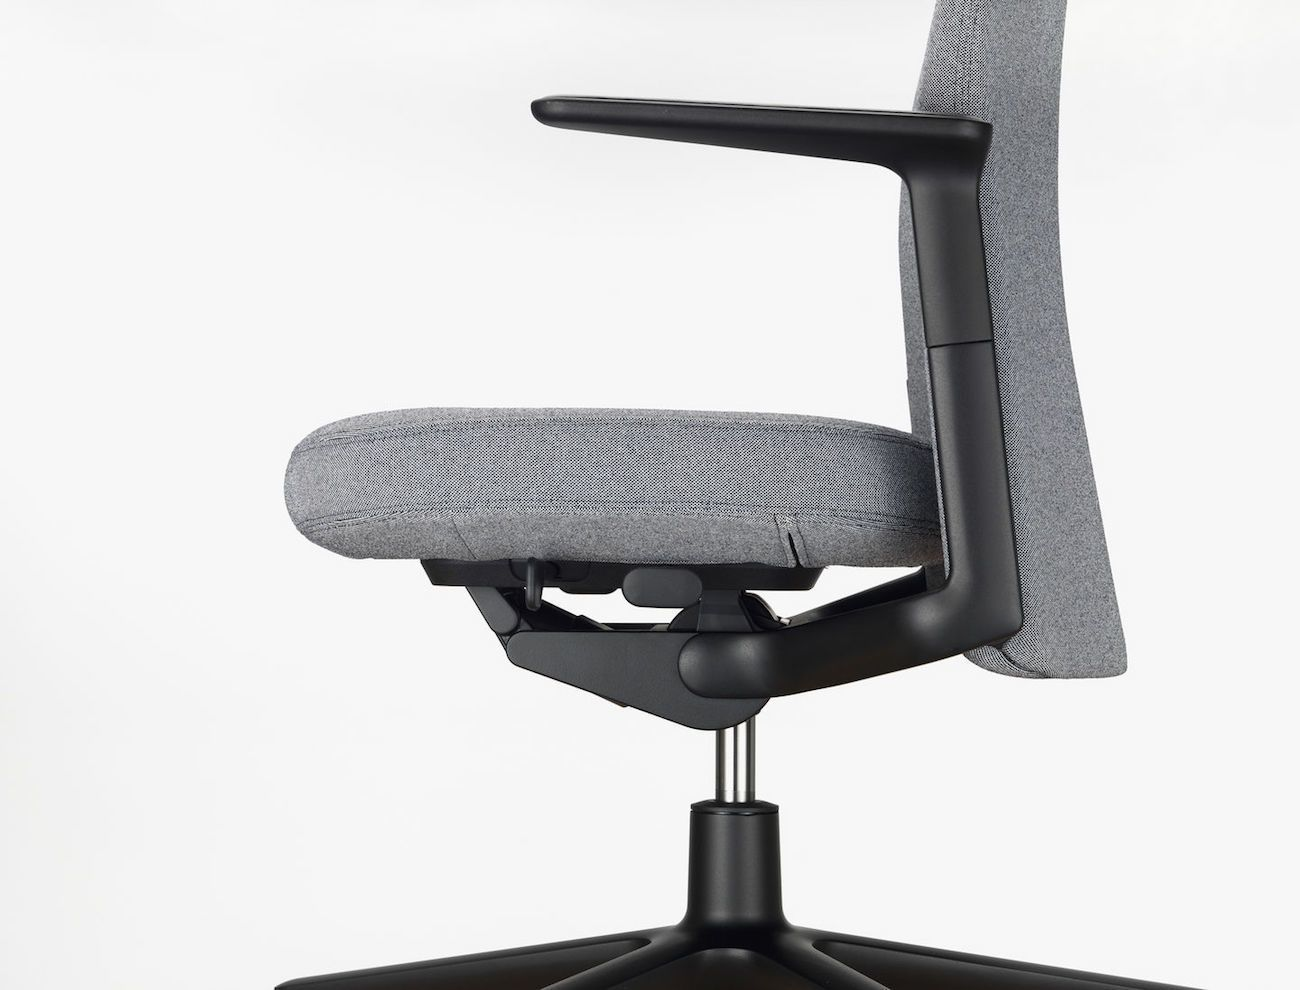 Vitra Office Chair Vitra Pacific Minimalist Desk Chair